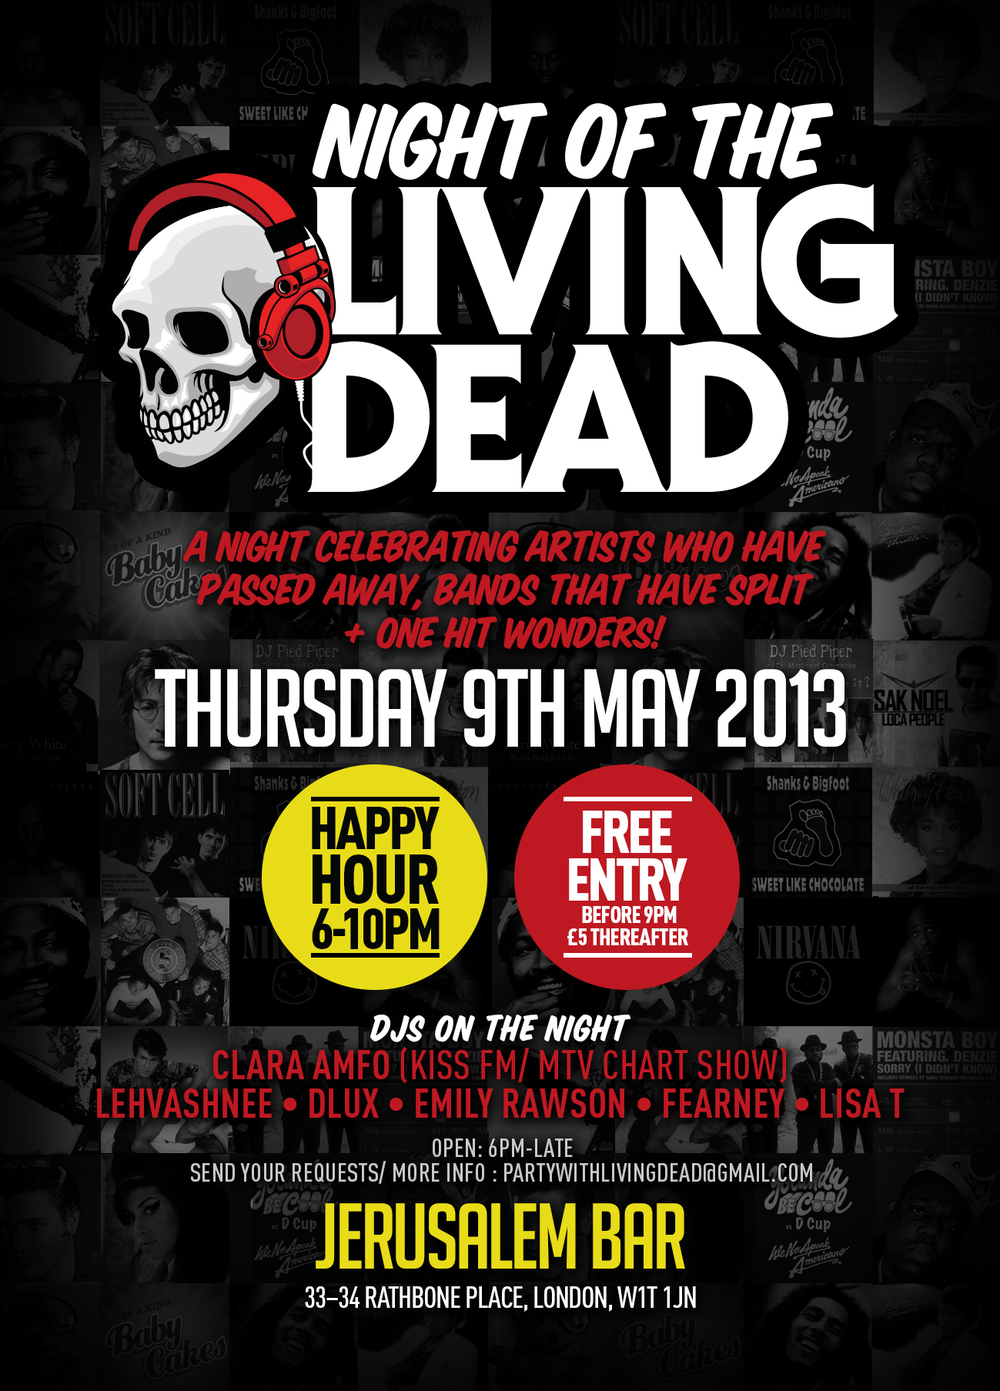 Night of the Living Dead Launch Party